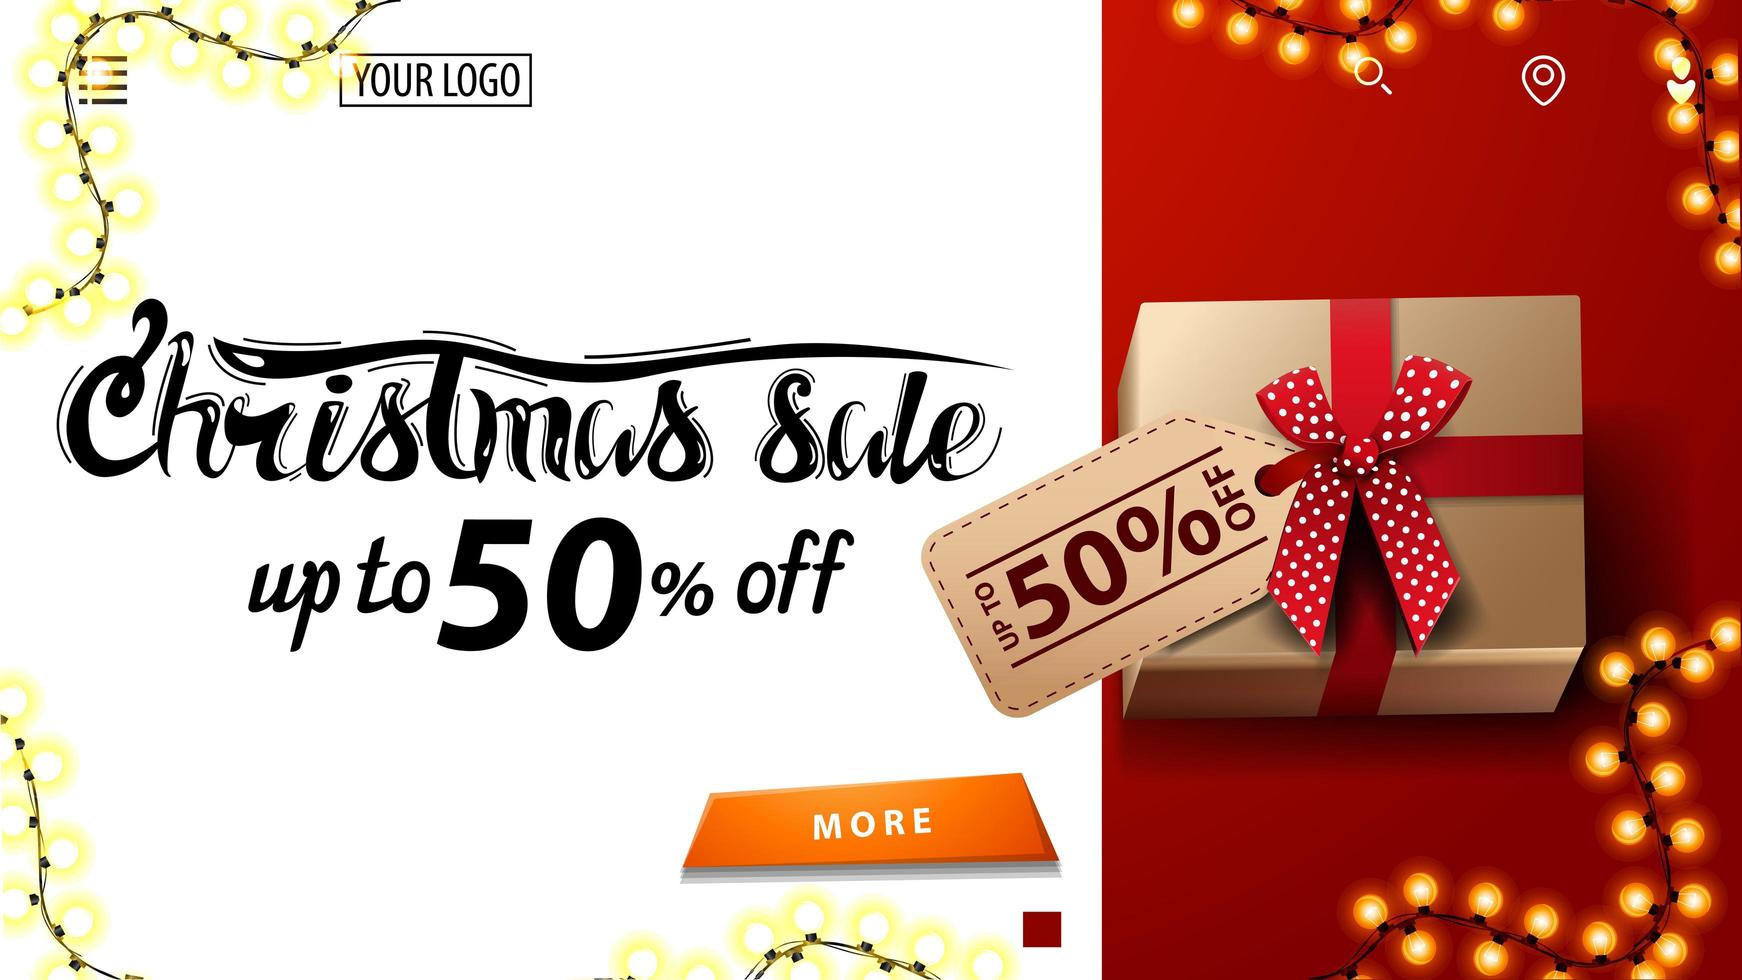 Christmas sale, up to 50 off, white and red discount banner for website with present with price tag, top view vector